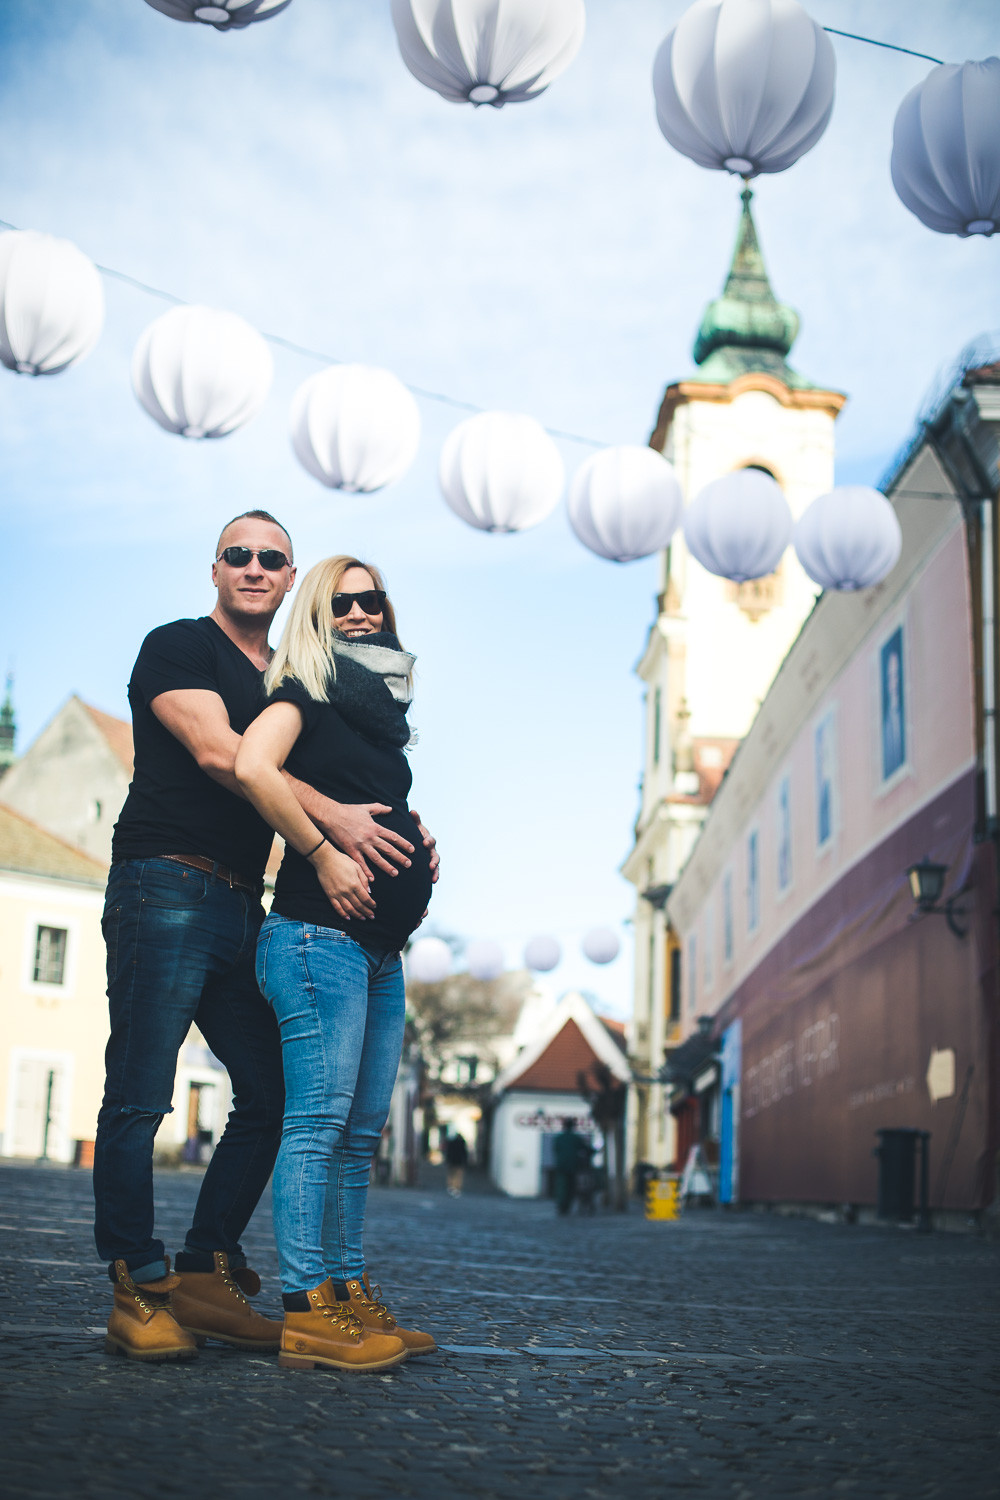 Maternity pictures in Szentendre